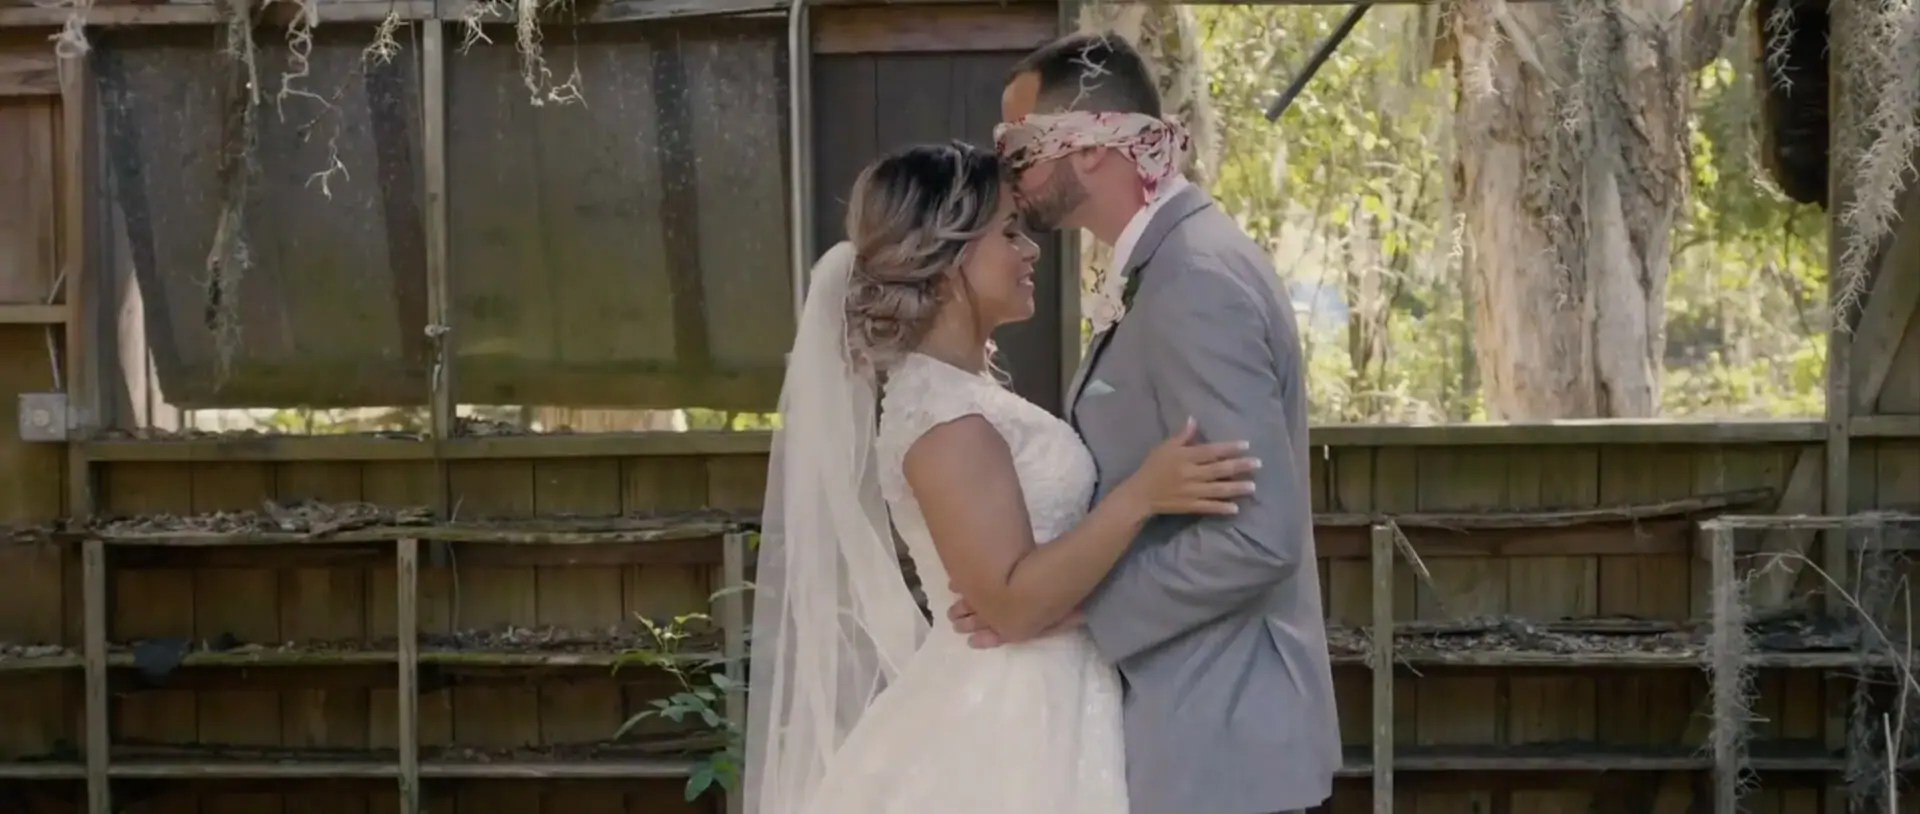 Maria & Matthew Wedding Film